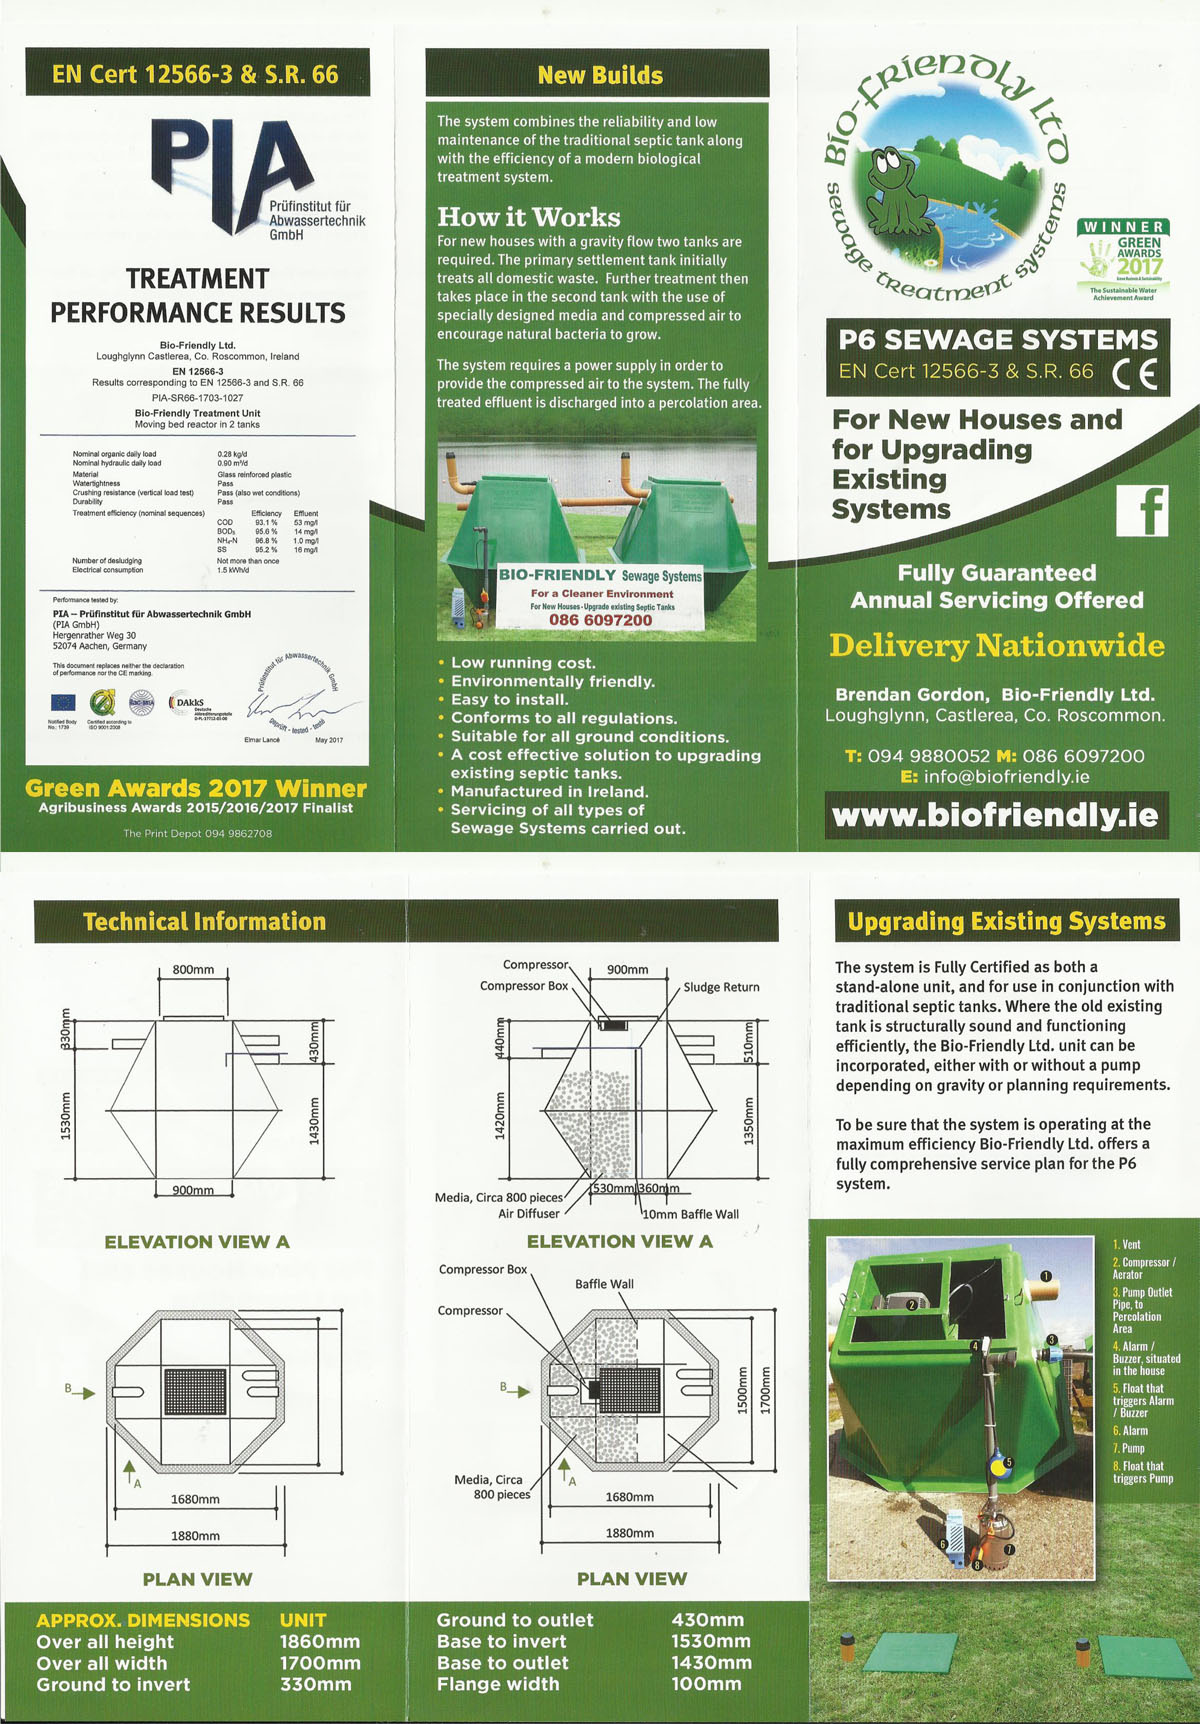 Bio-Friendly septic tank and waste water treatment system brochure for manufacture and installation of sewage systems.